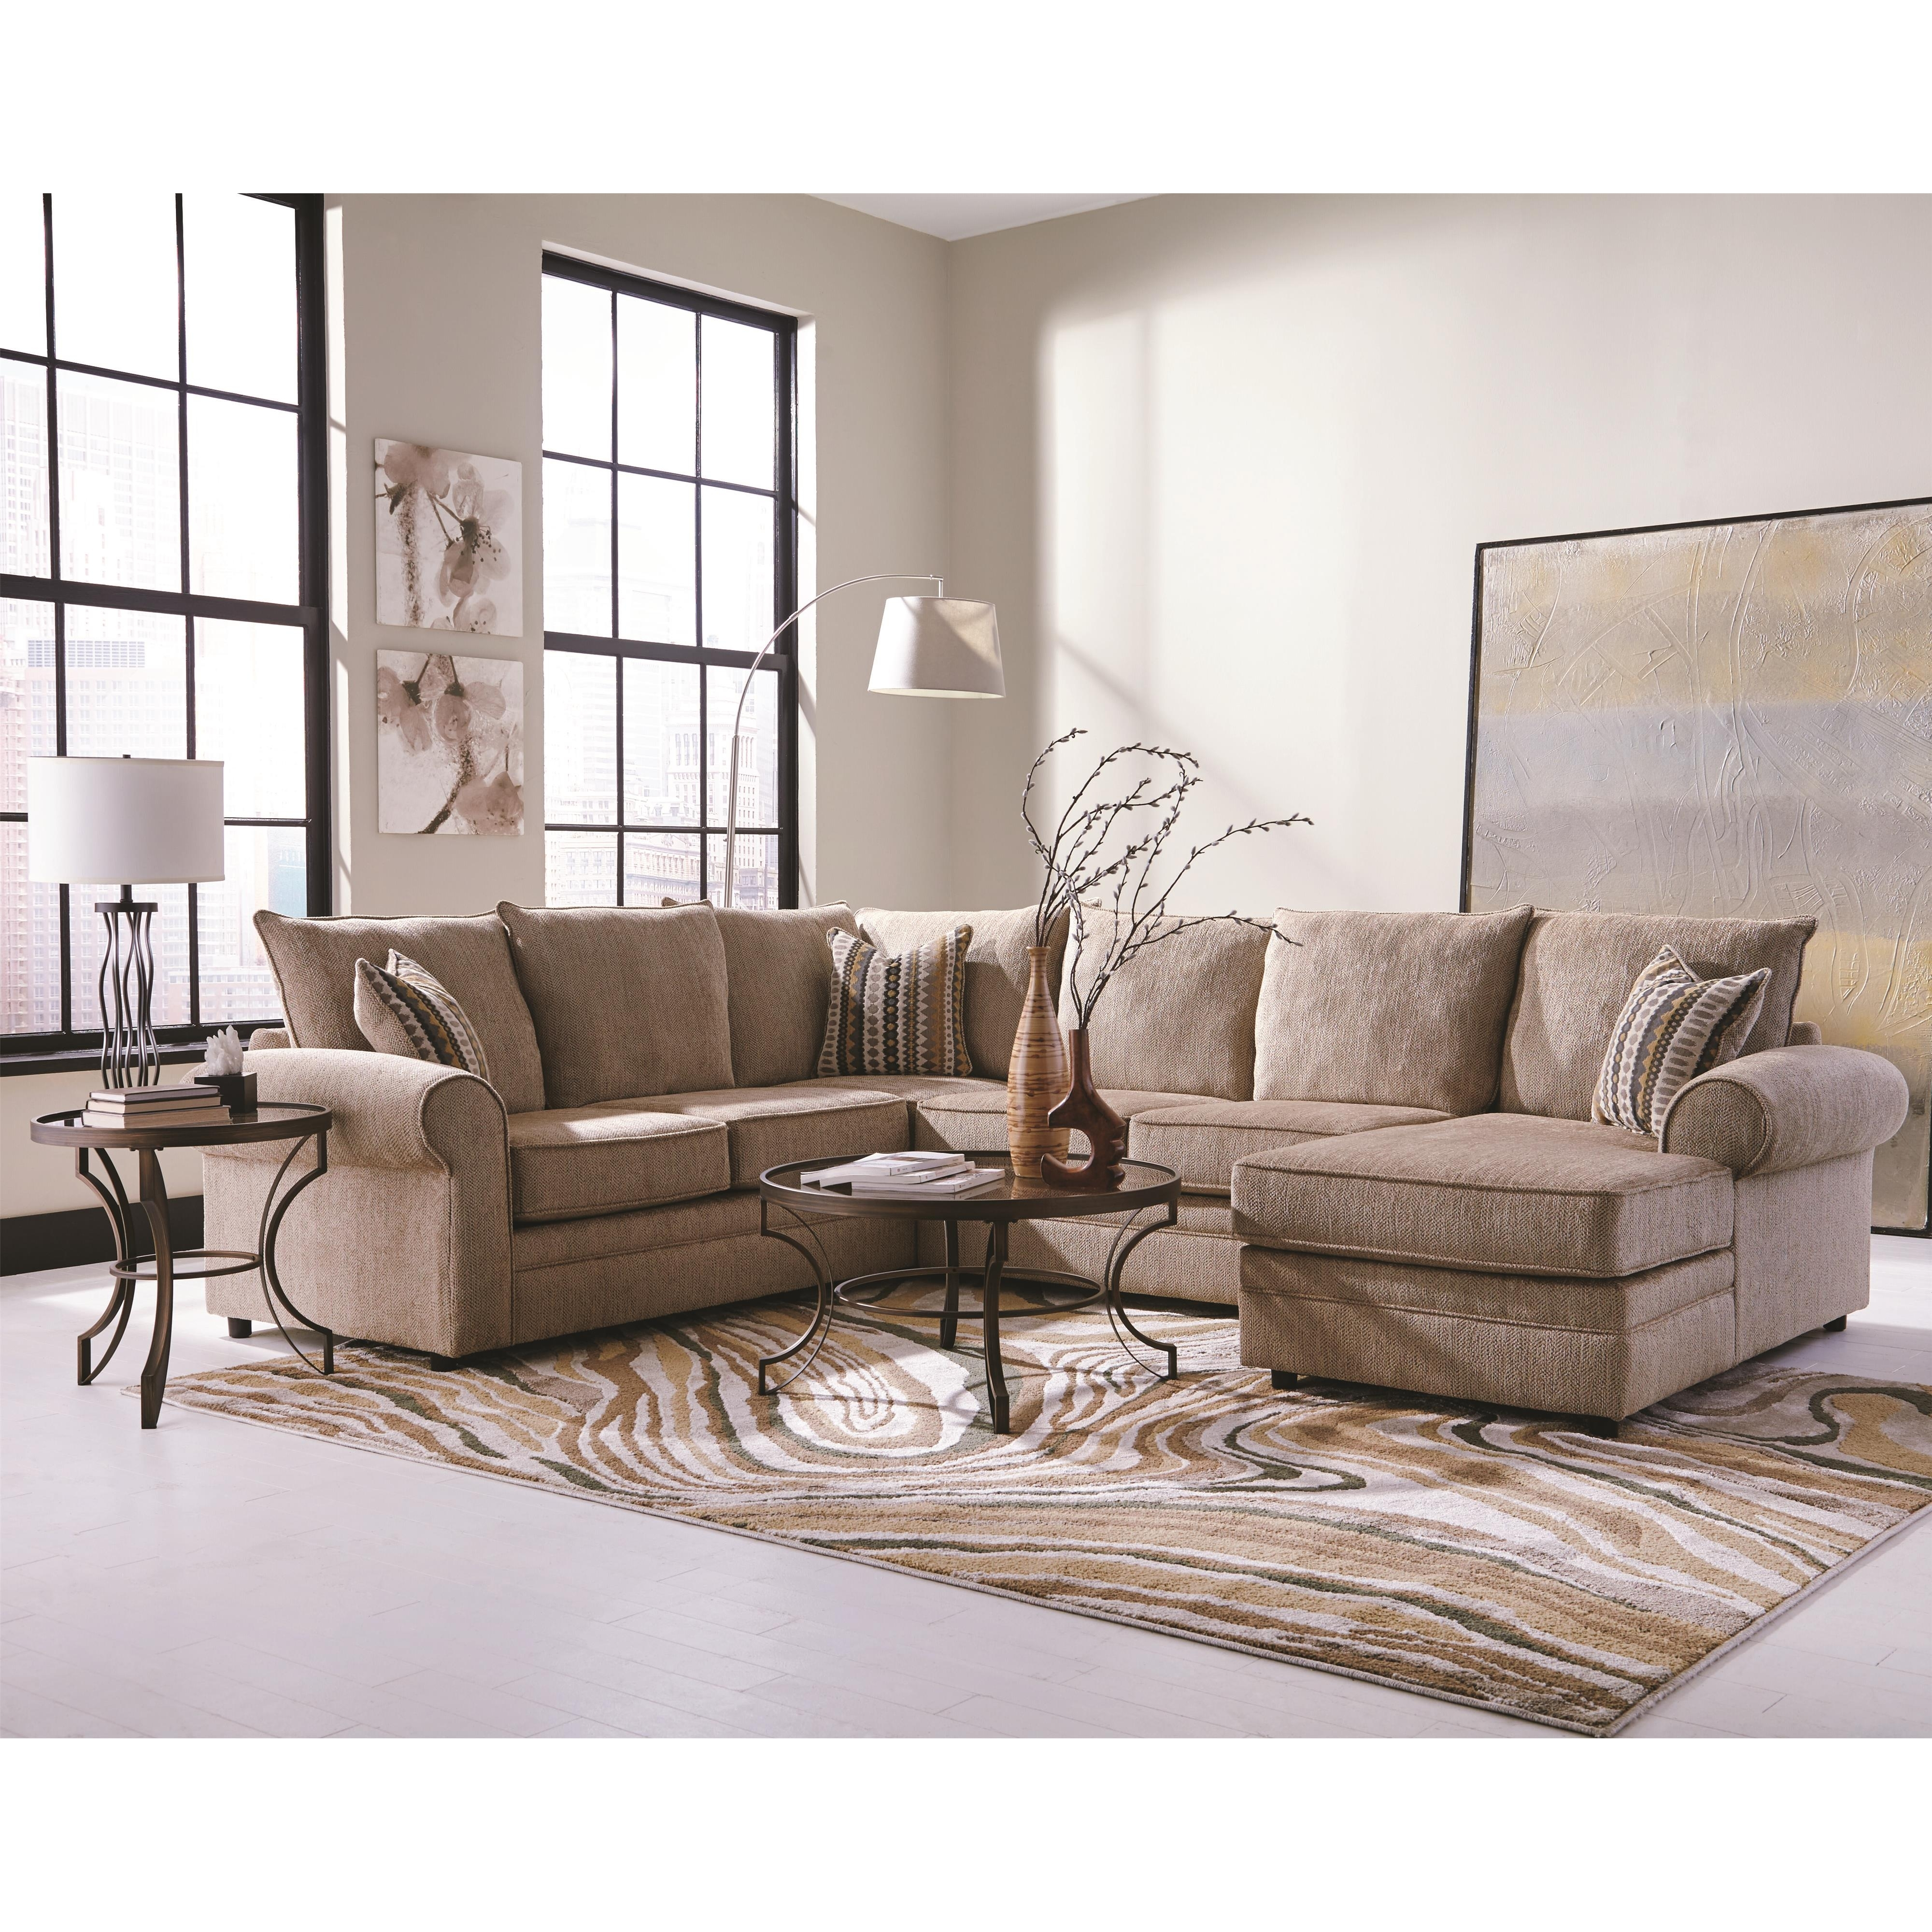 Fairhaven Cream Colored U Shaped Sectional With Chaise | Quality Intended For Philadelphia Sectional Sofas (Image 2 of 10)